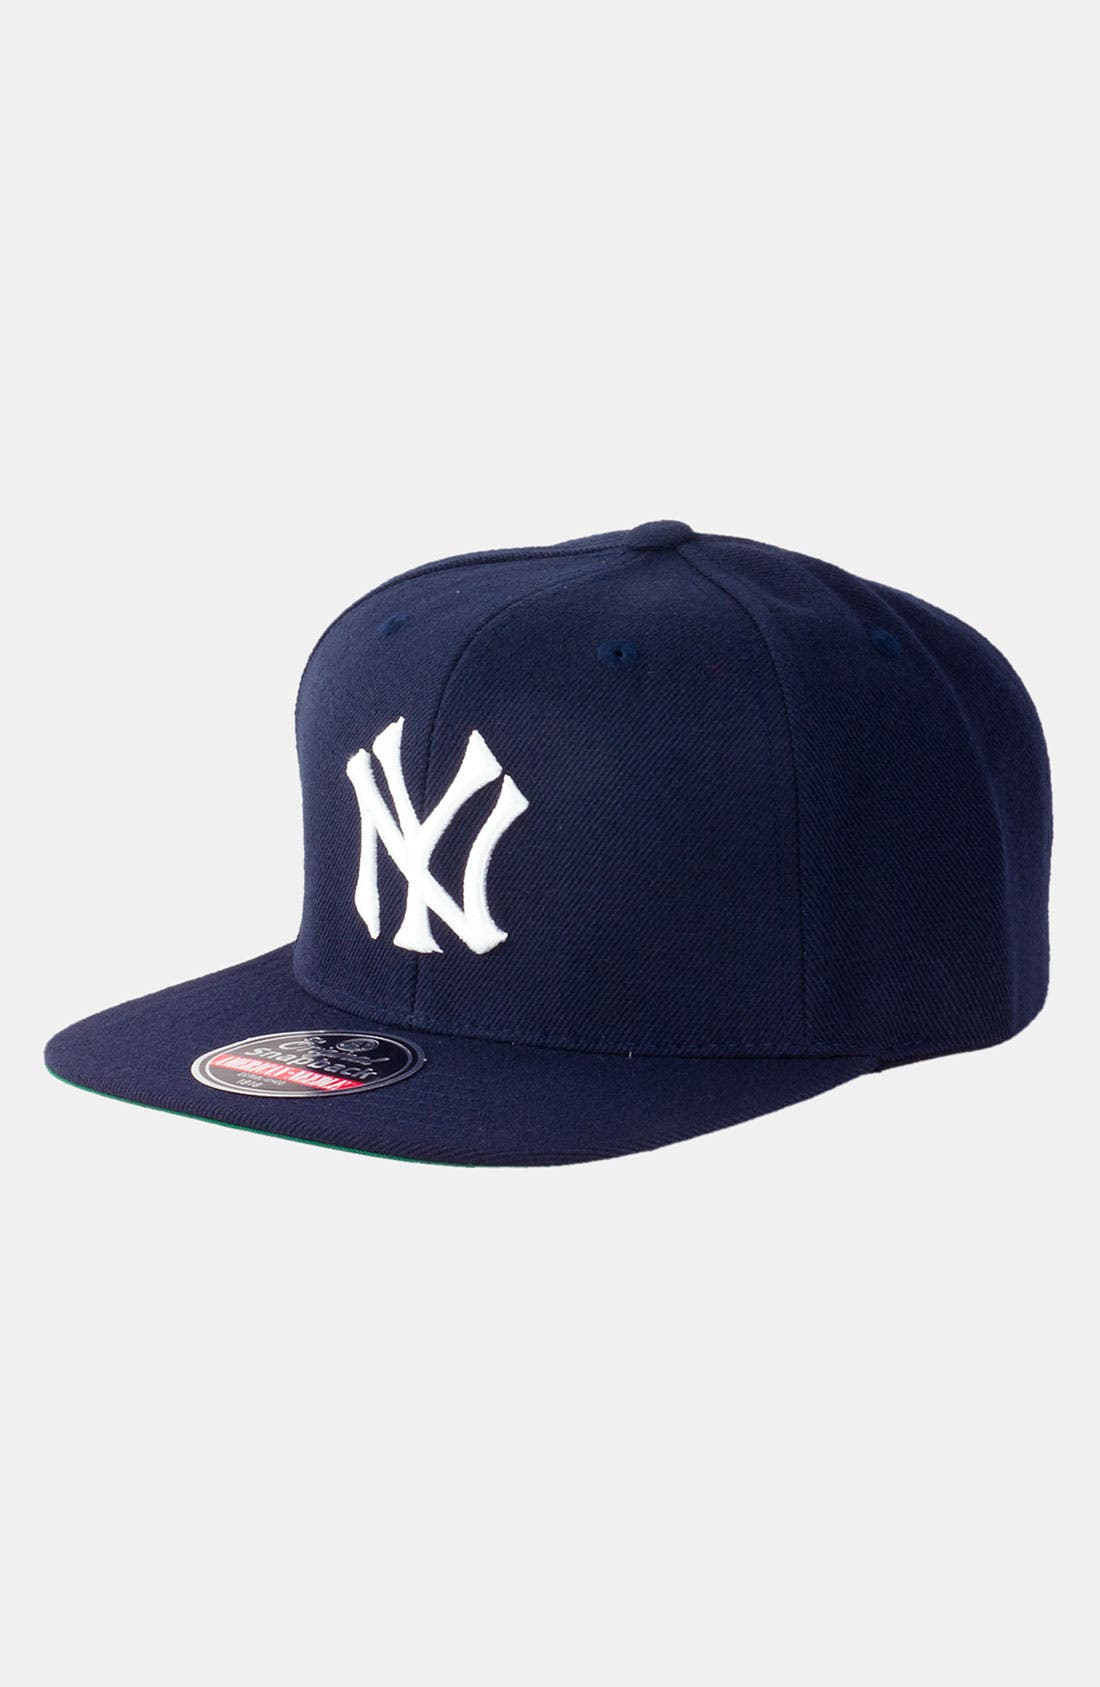 Alternate Image 1 Selected - American Needle 'New York Yankees - Cooperstown' Snapback Baseball Cap